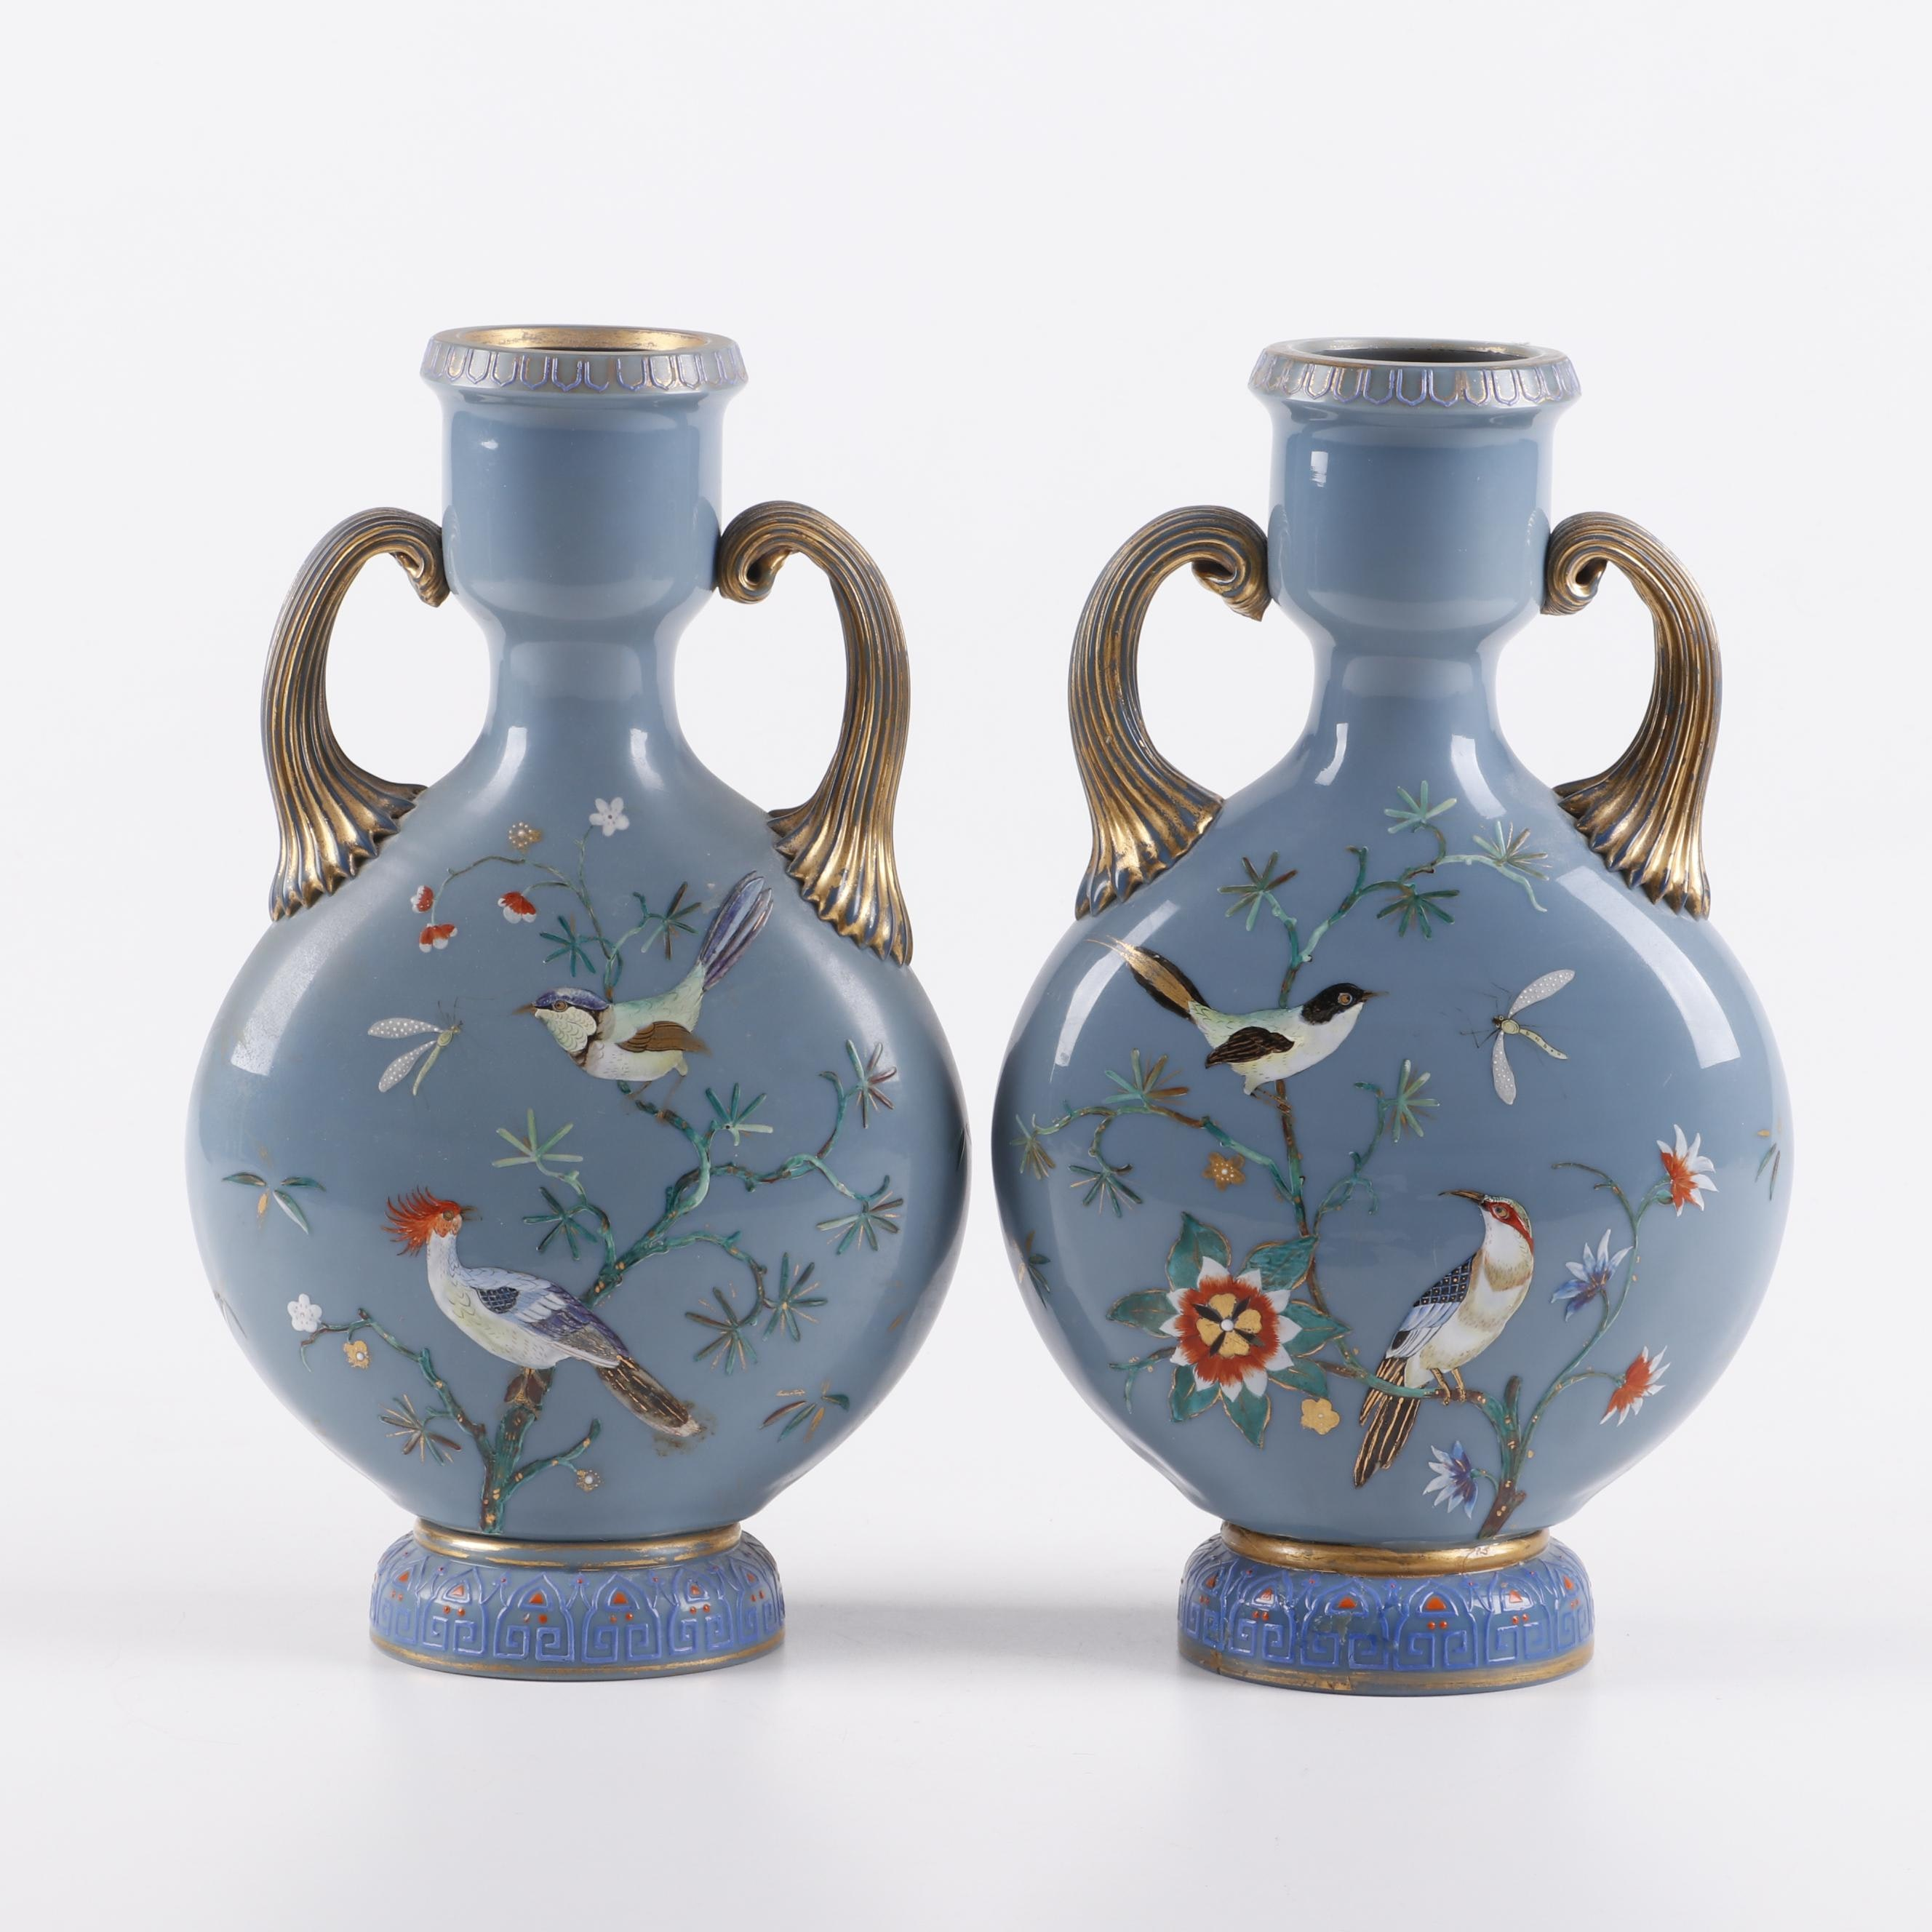 Victorian Hand-Painted Bristol Glass Vases, Late 19th Century